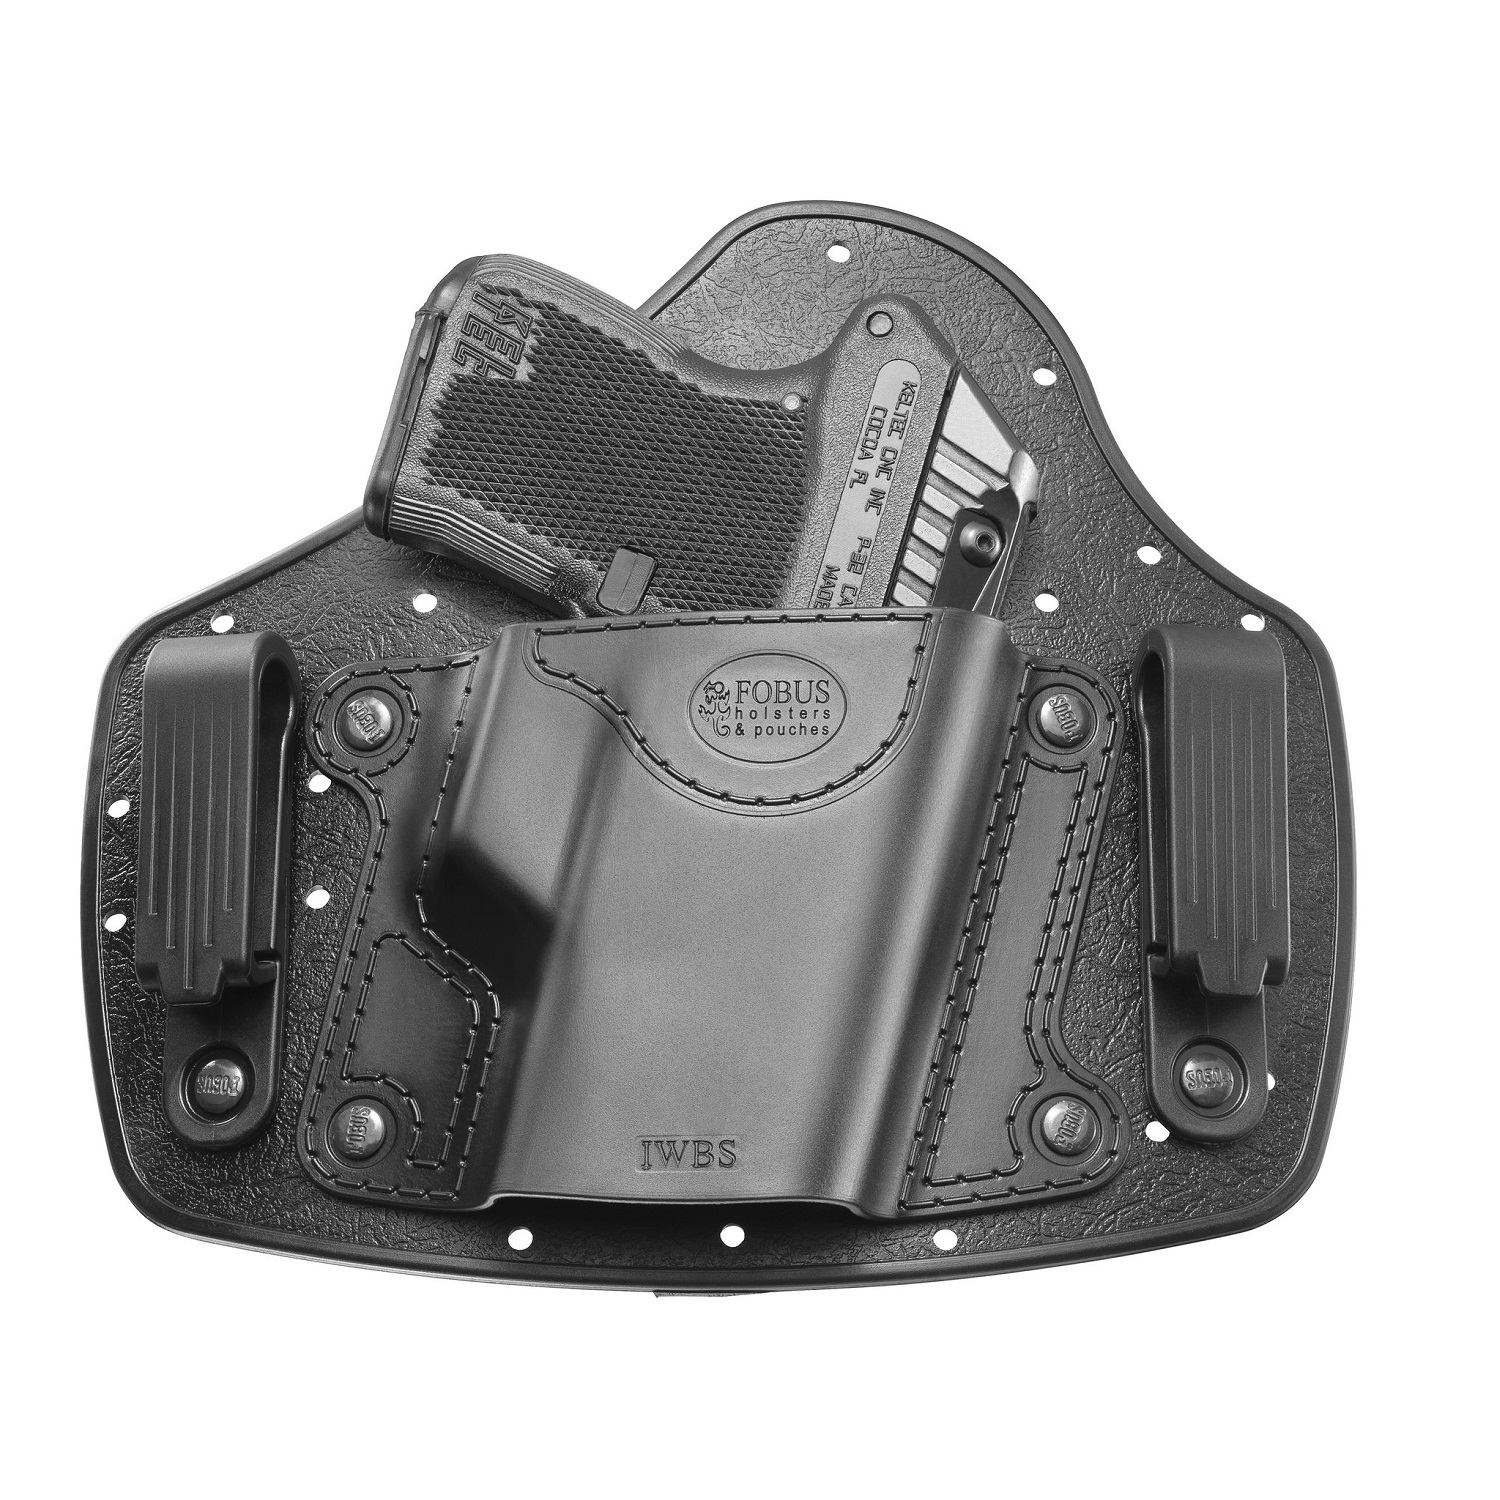 Click here to buy Fobus Universal Small Size Inside Waistband Holster SKU: IWBS by Fobus.